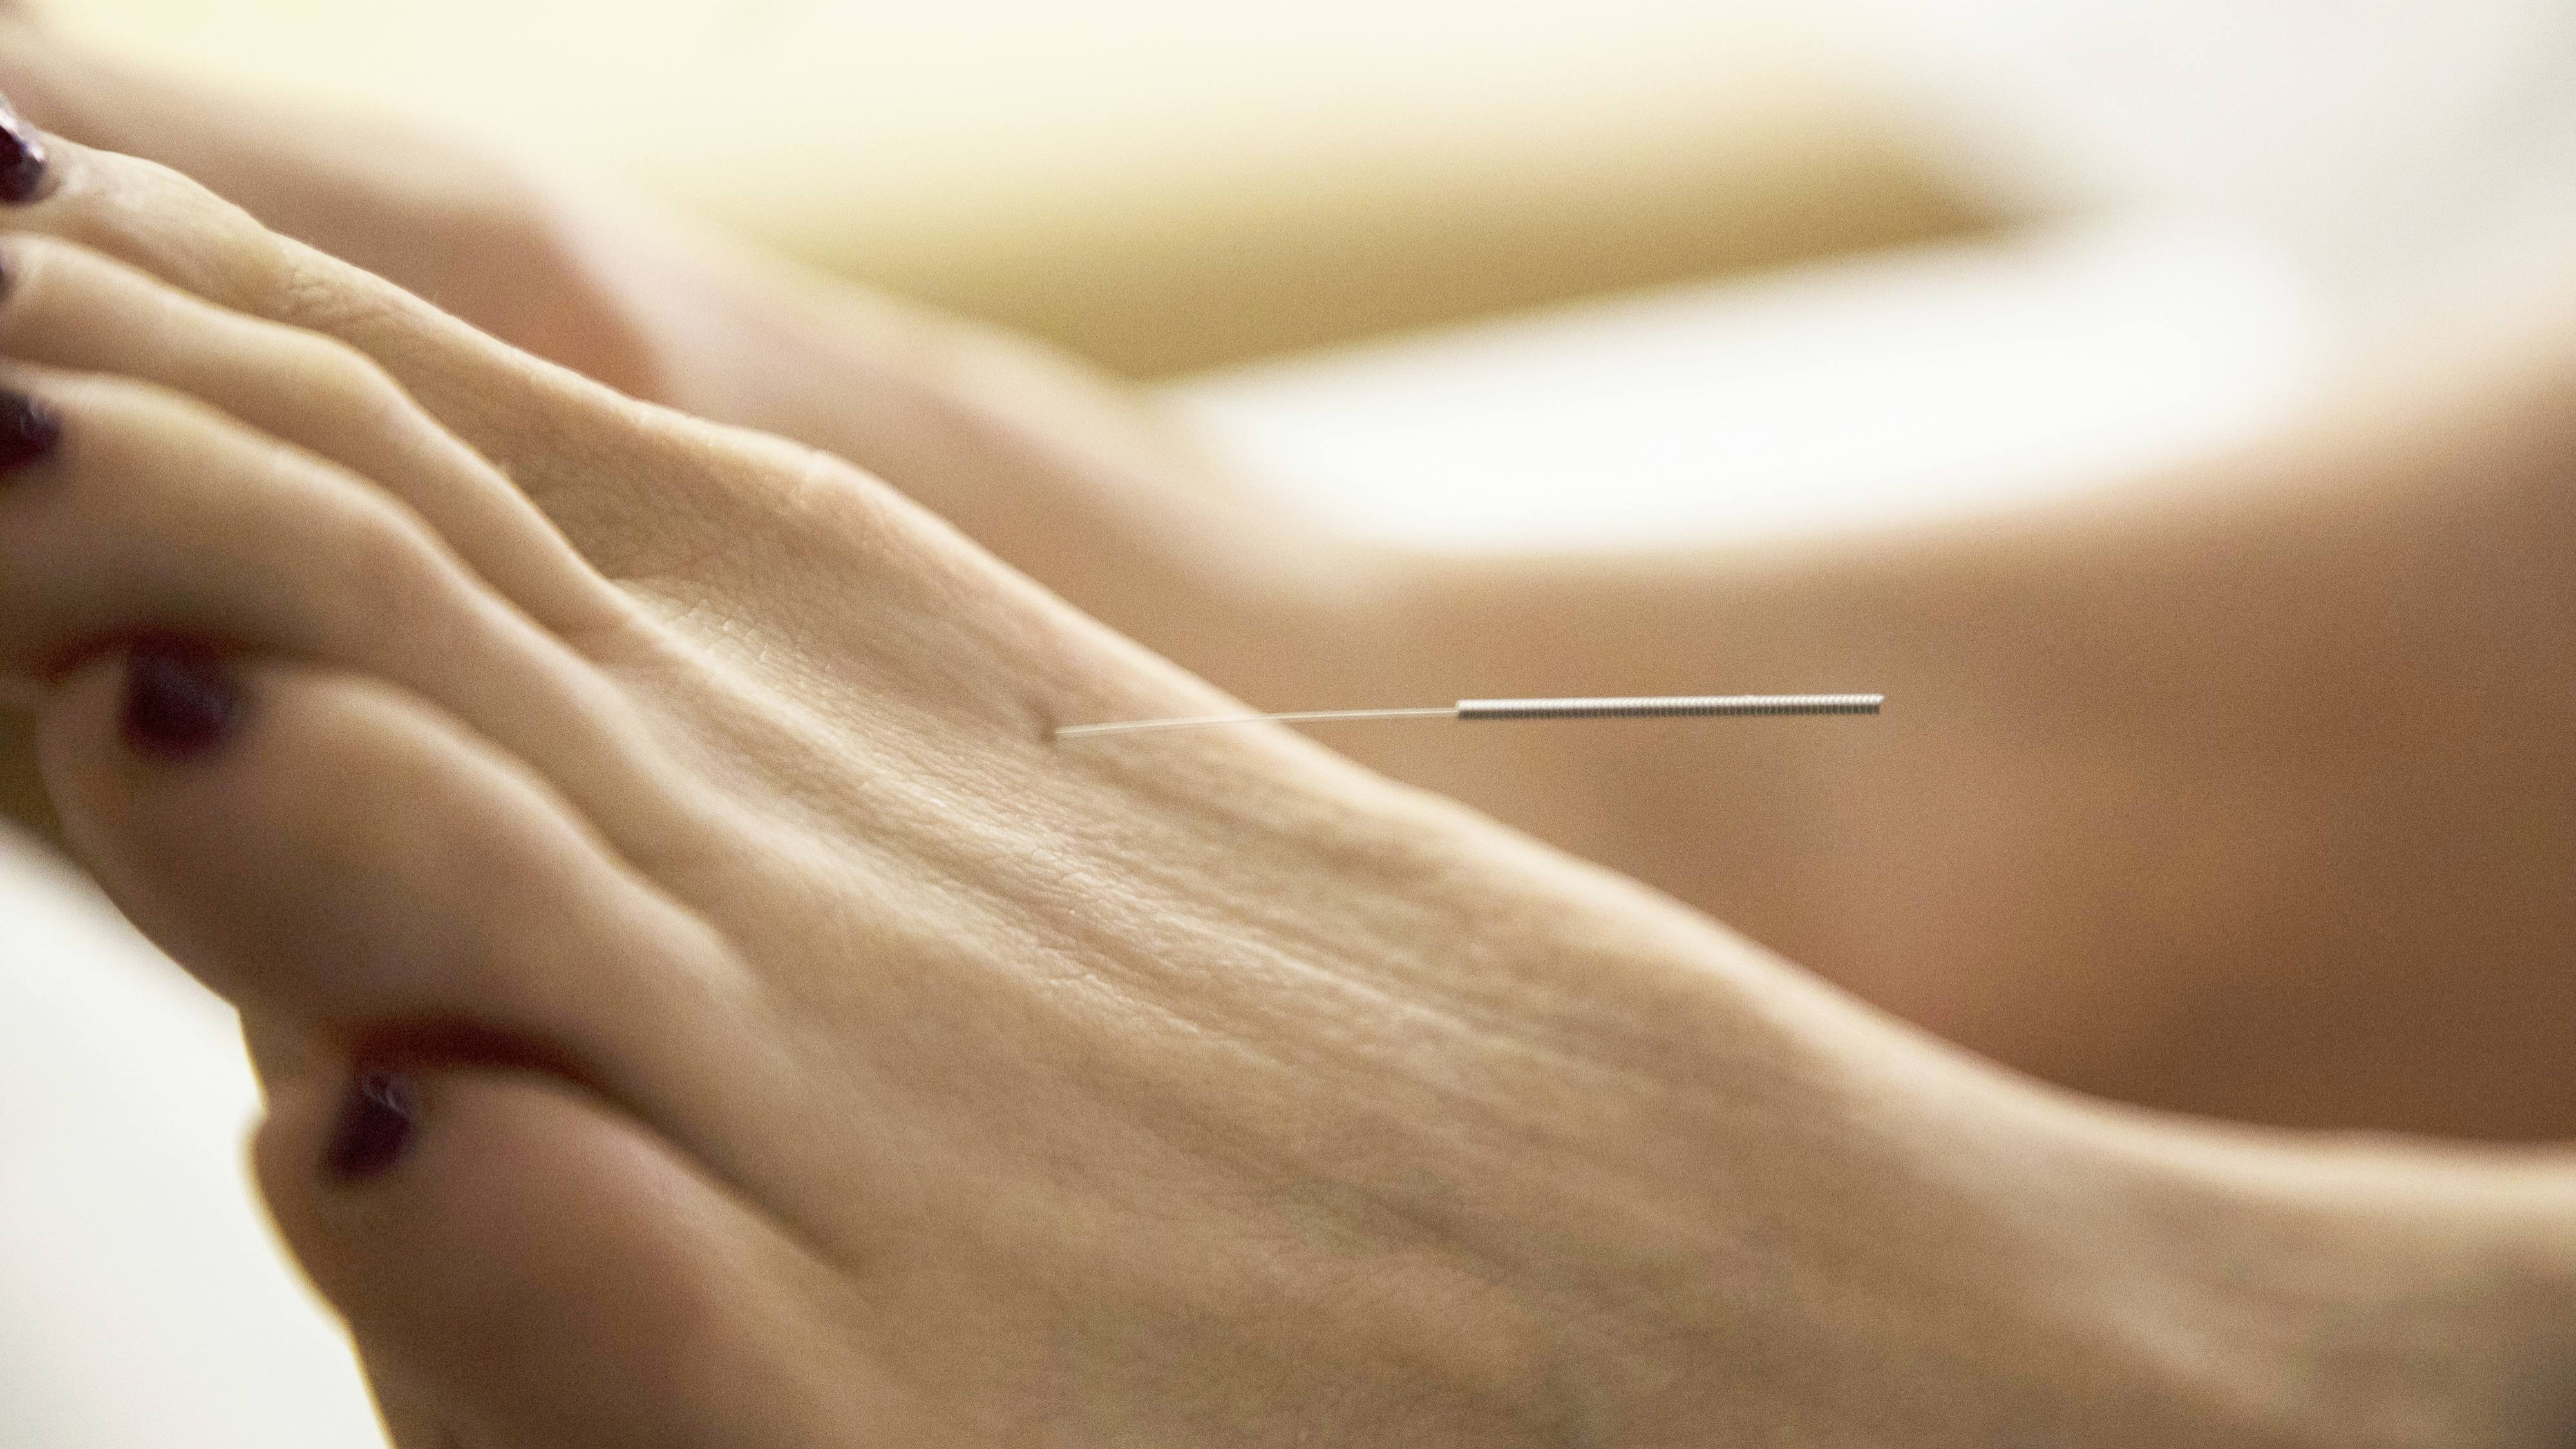 a women's foot with a needle in it during an acupuncture therapy session